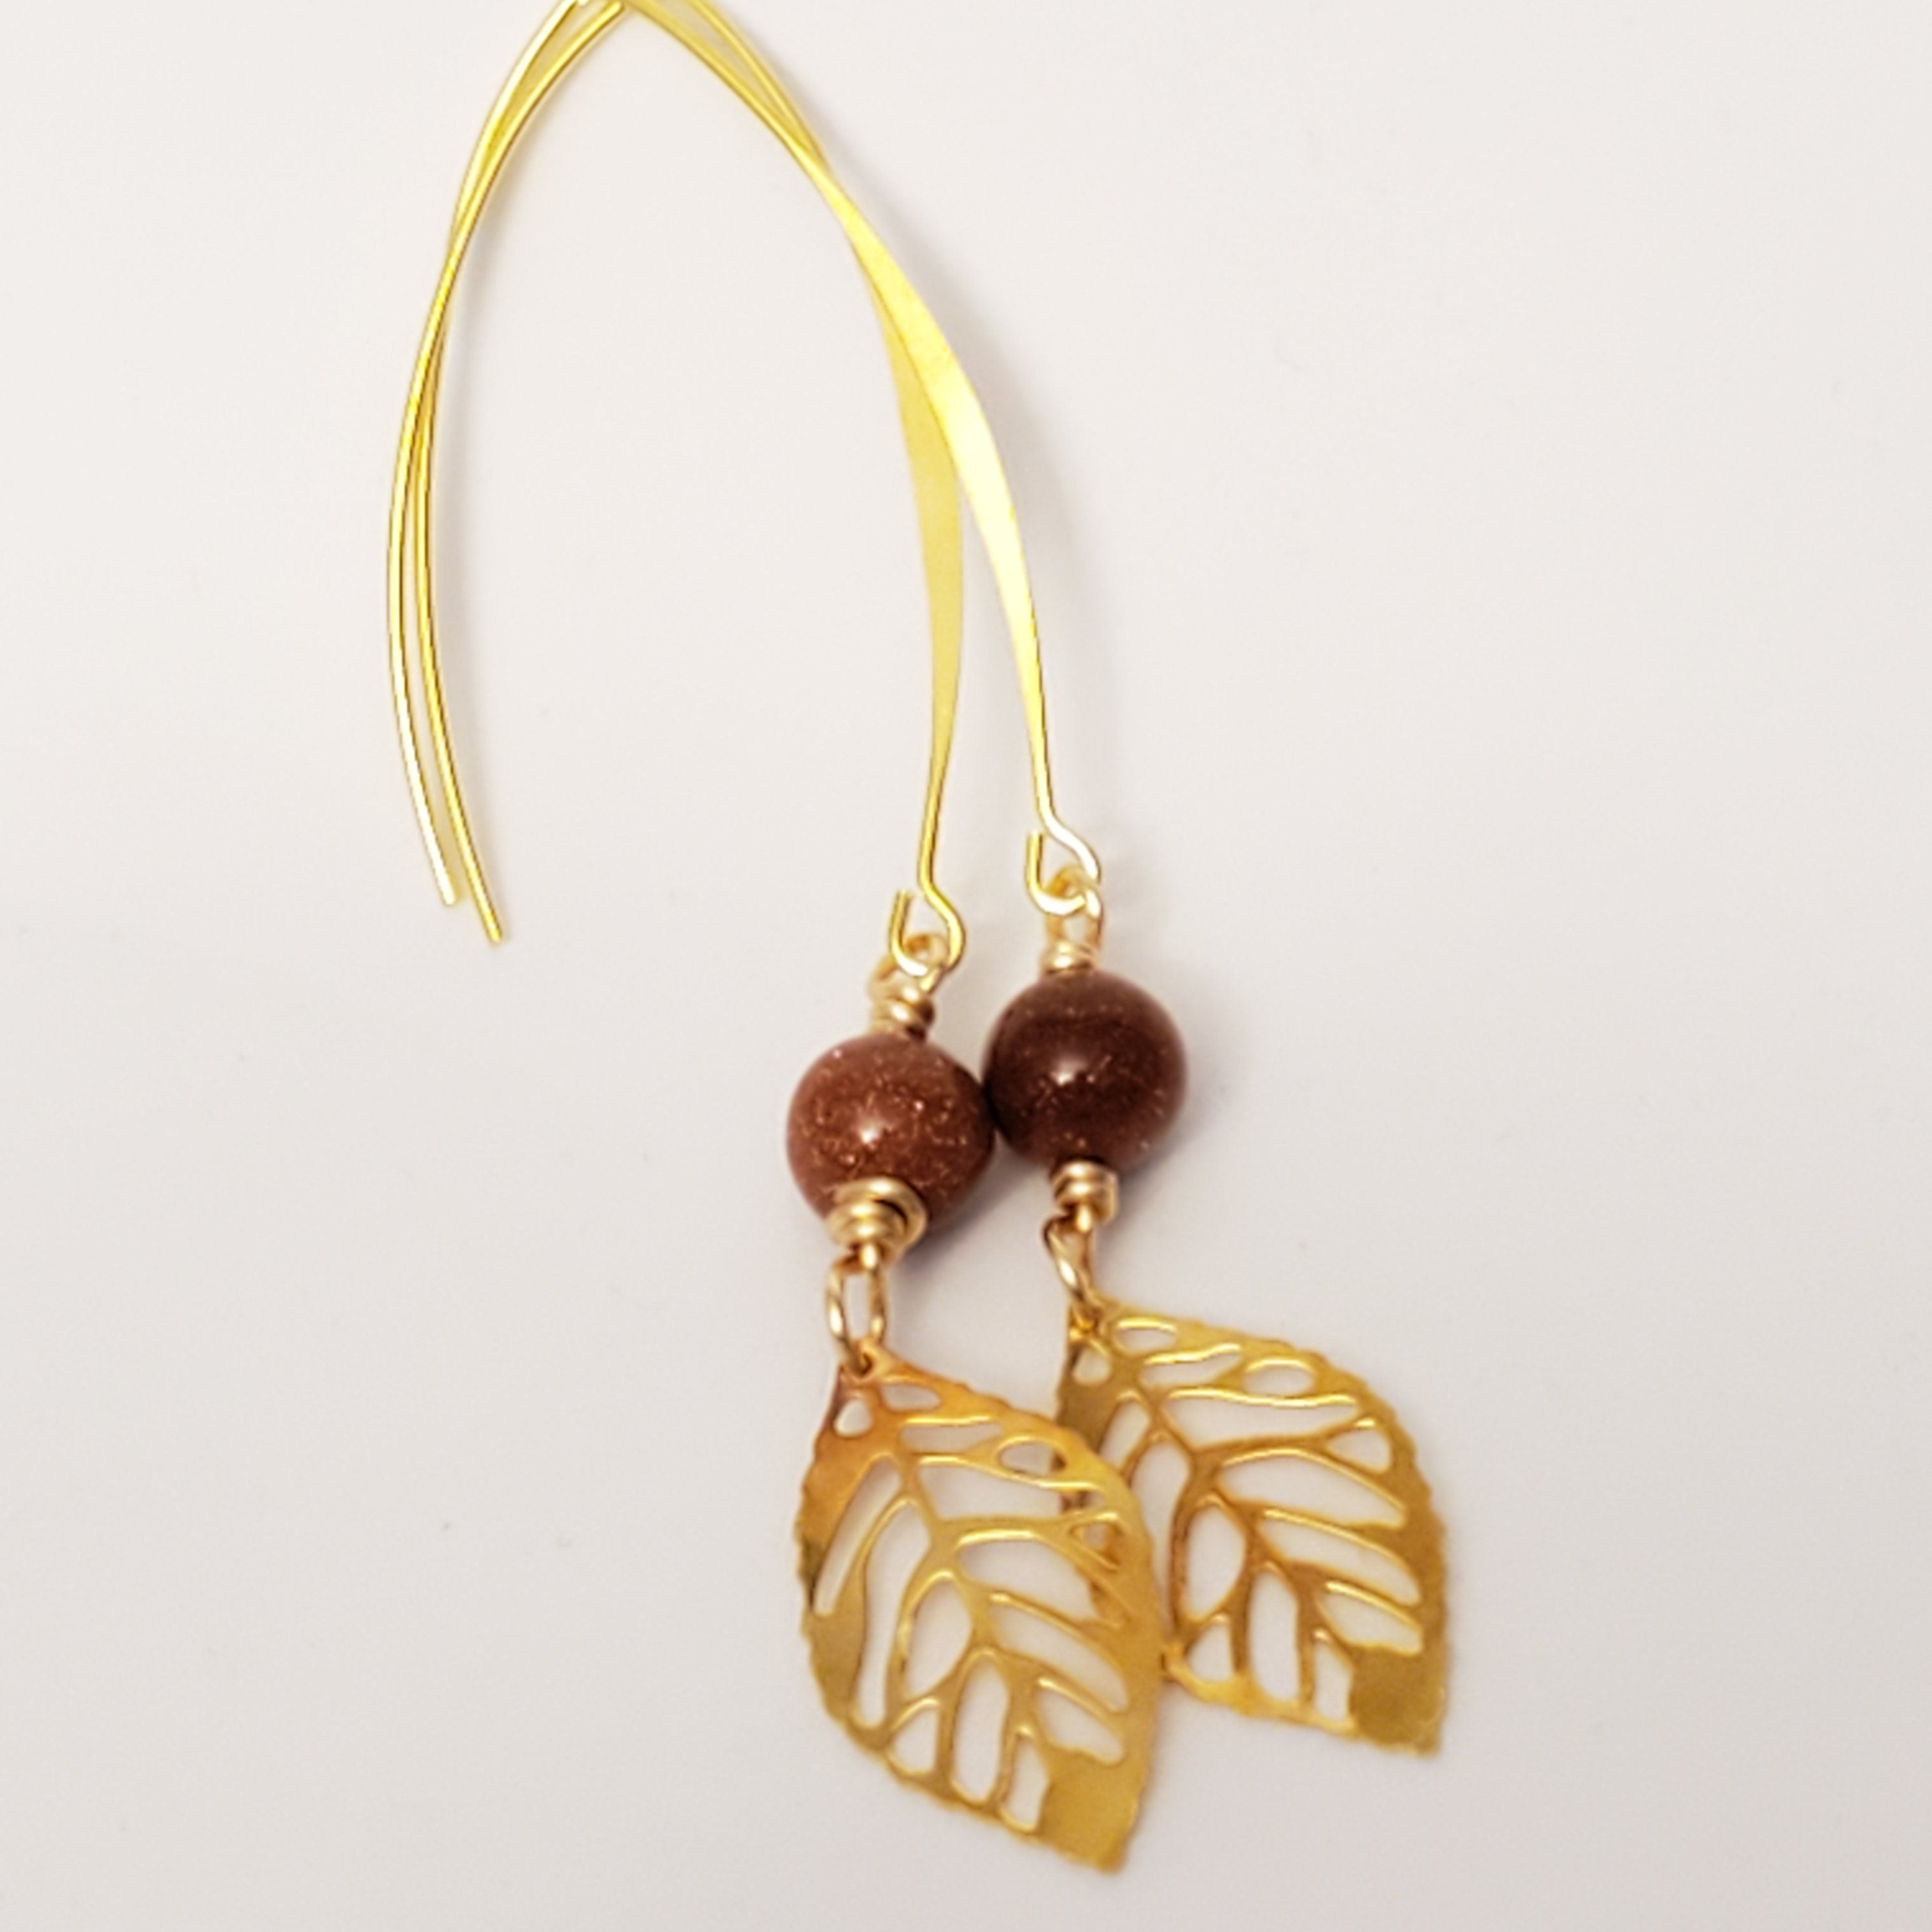 Gold leaf drop earrings with sandstone